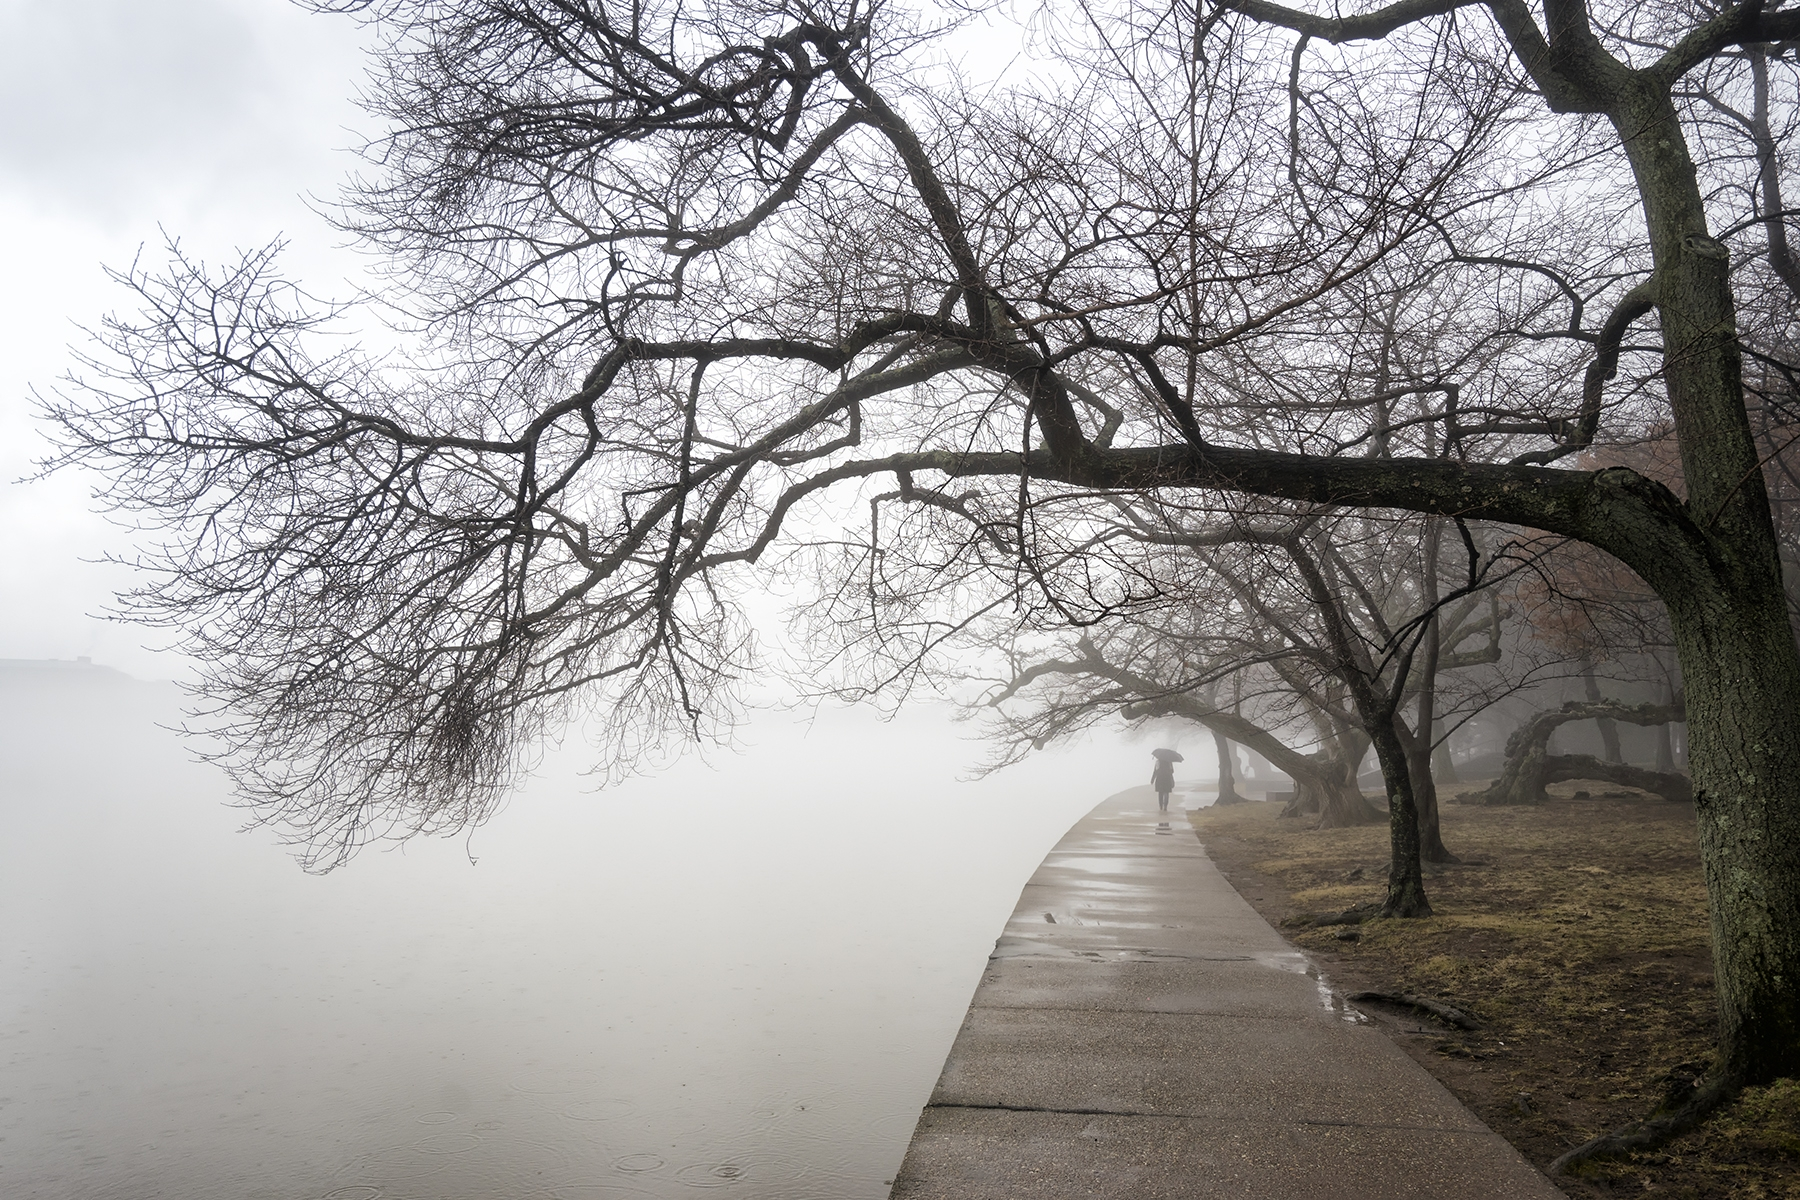 fog, tidal basin, winter, weather, umbrella, stranger, candid, washington dc, national mall, moody, cherry blossom trees, trunk, photowalk,